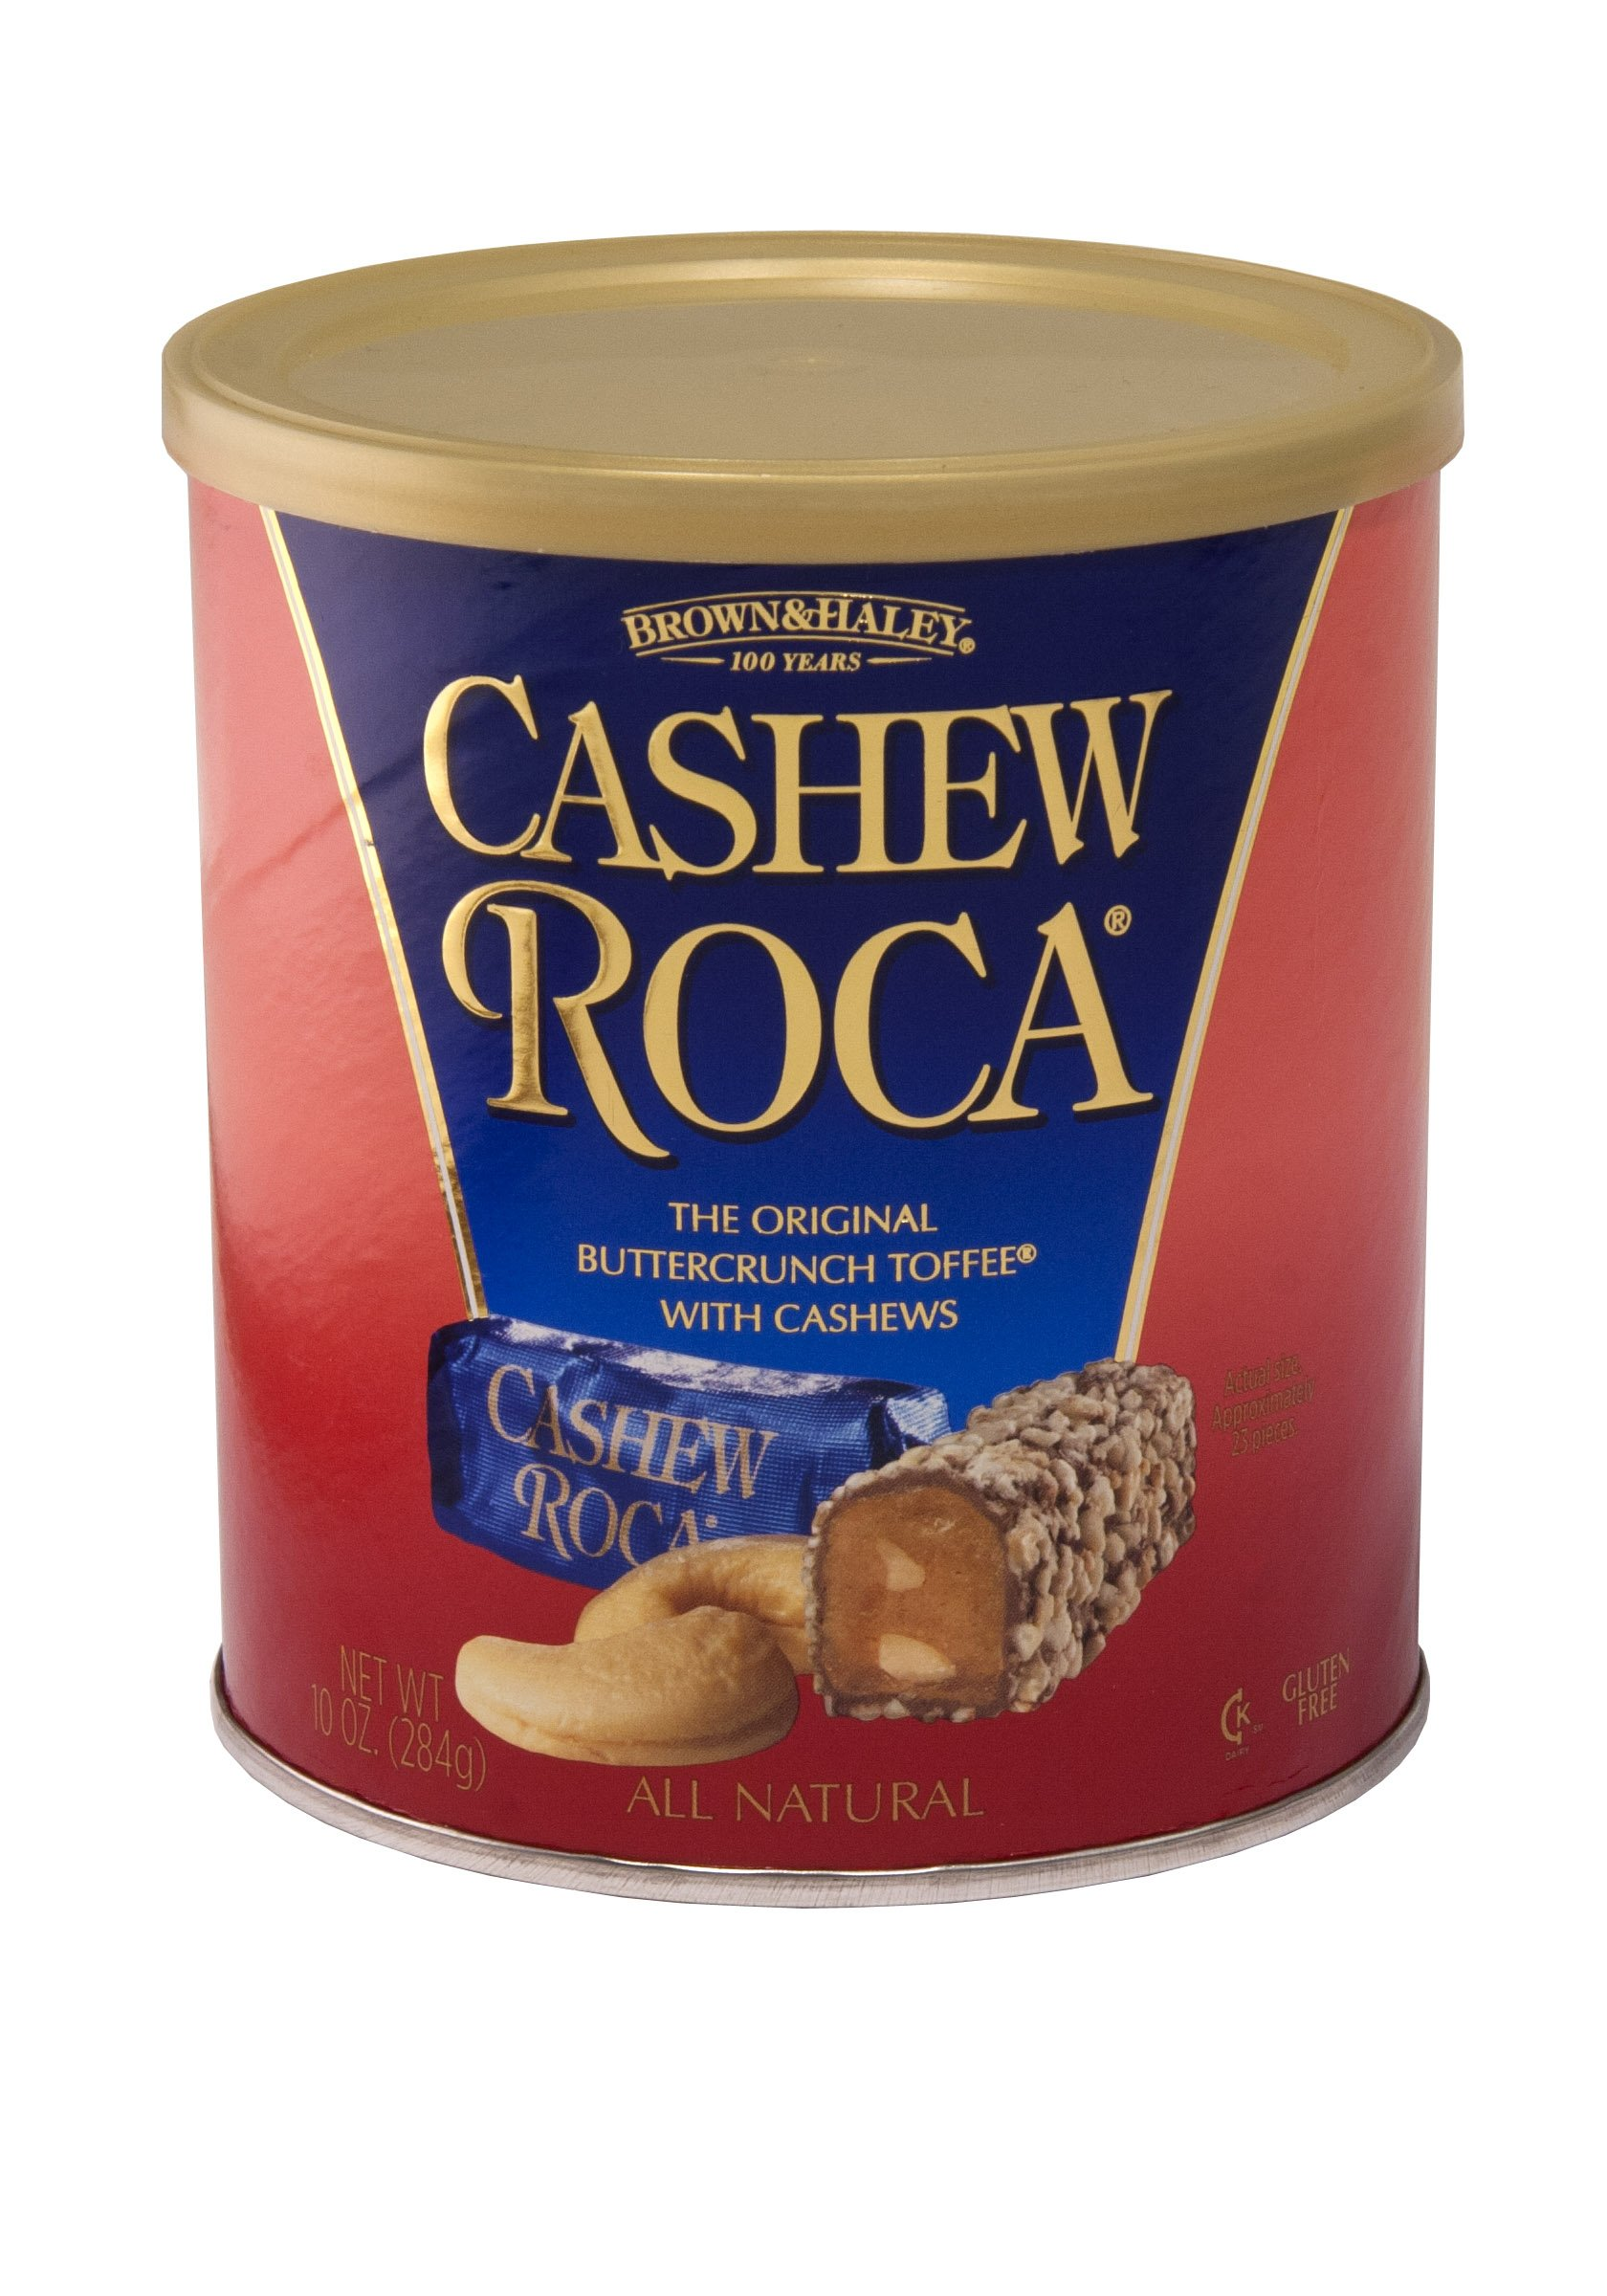 10 oz CASHEW ROCA Canister by ROCA